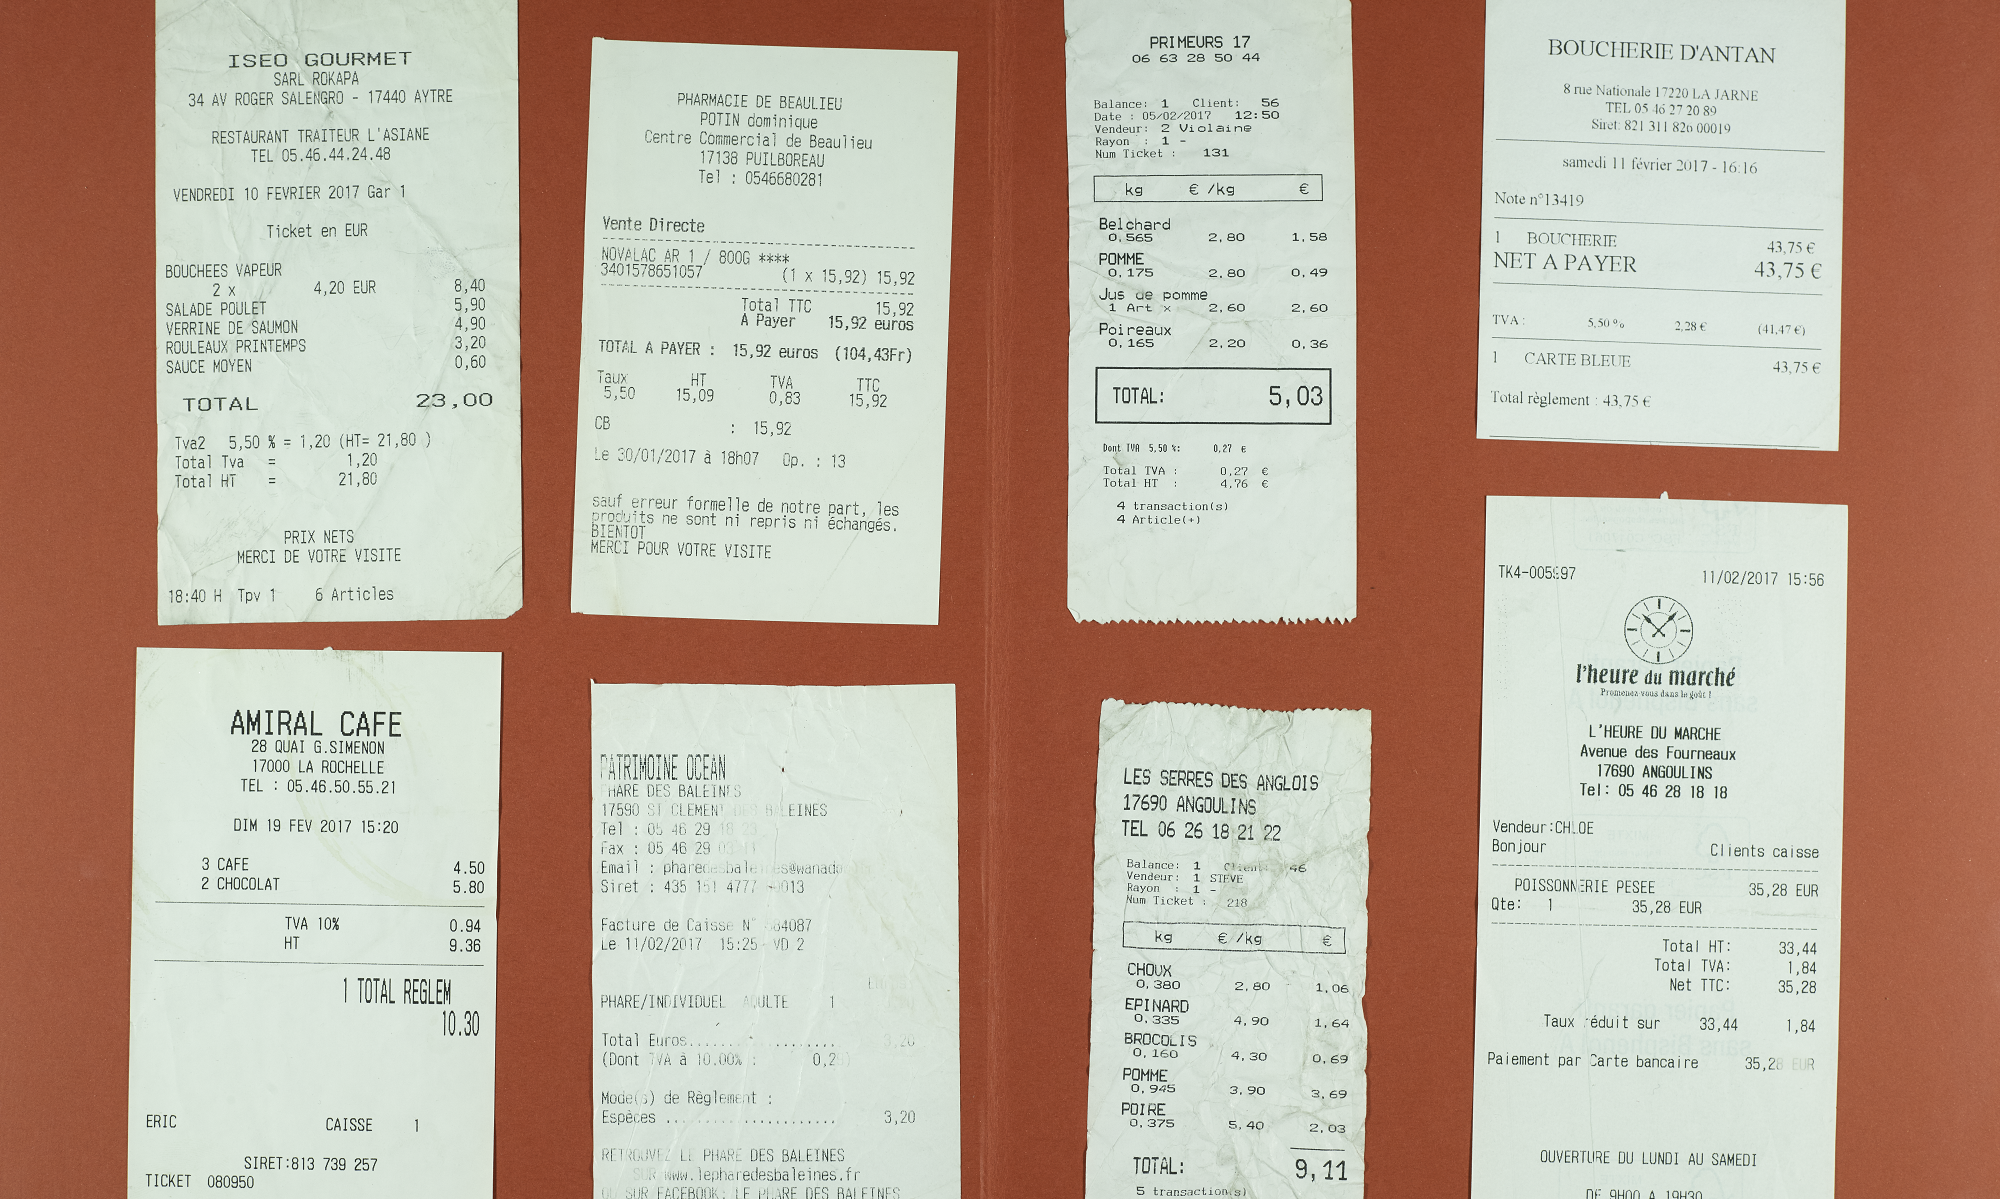 Receipts Images and Texts